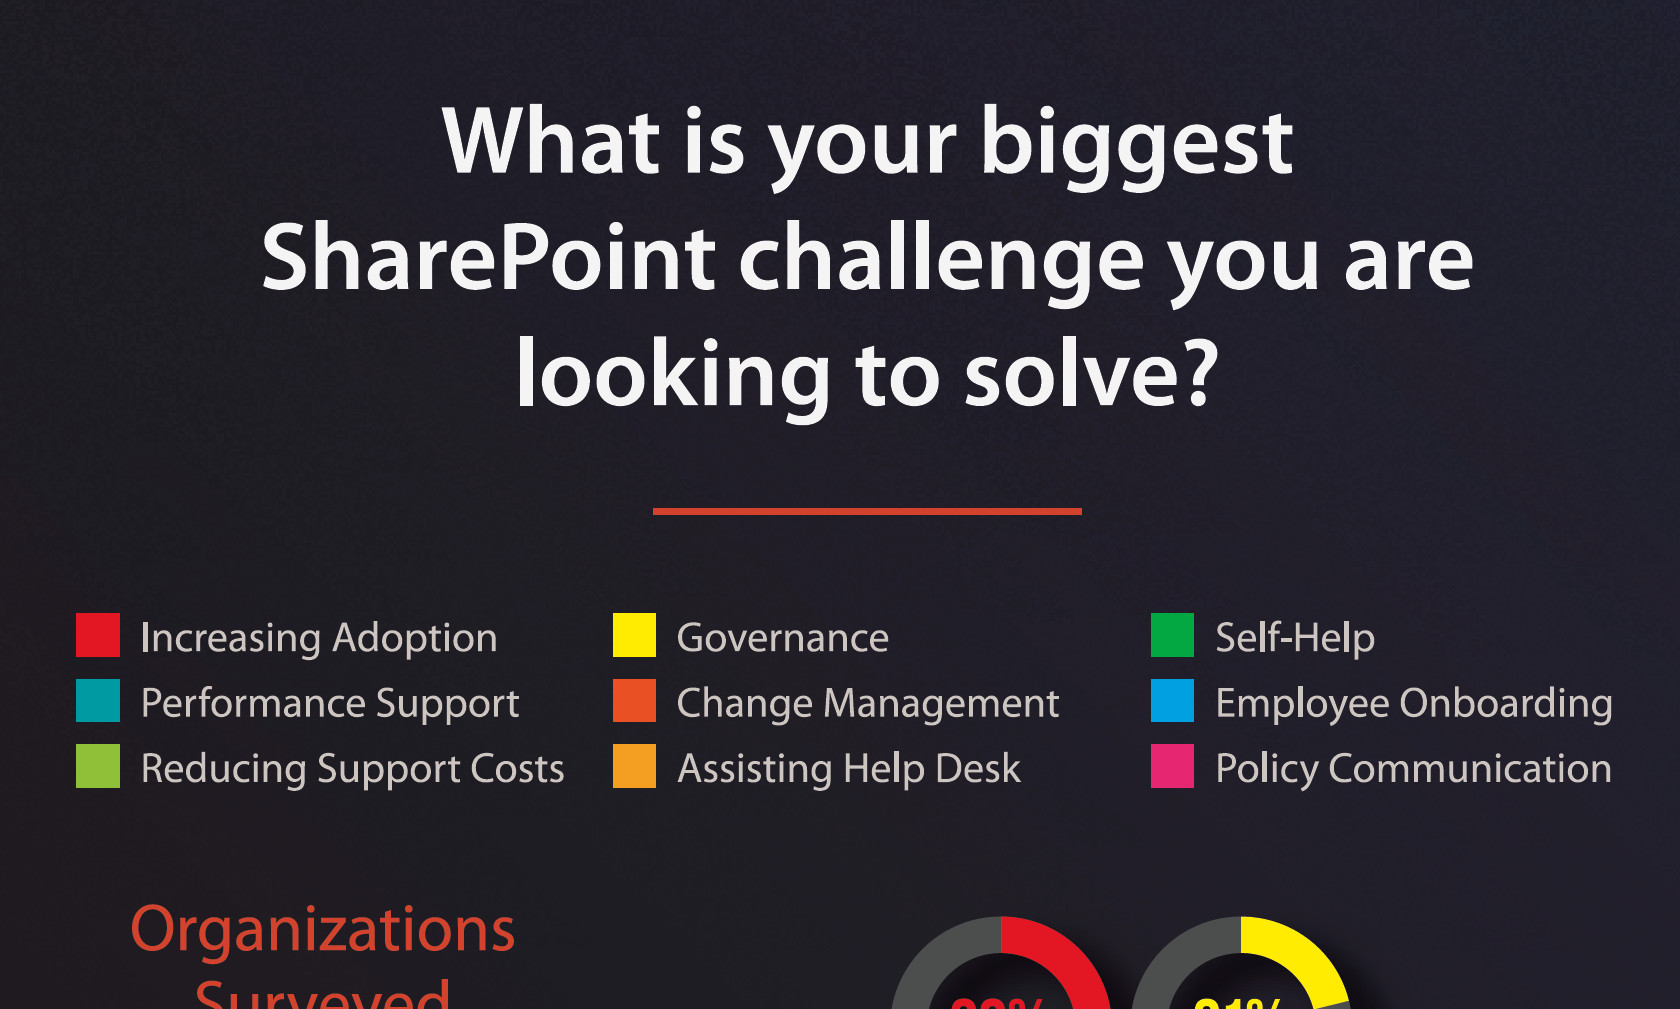 What is your biggest SharePoint challenge you are looking to solve?